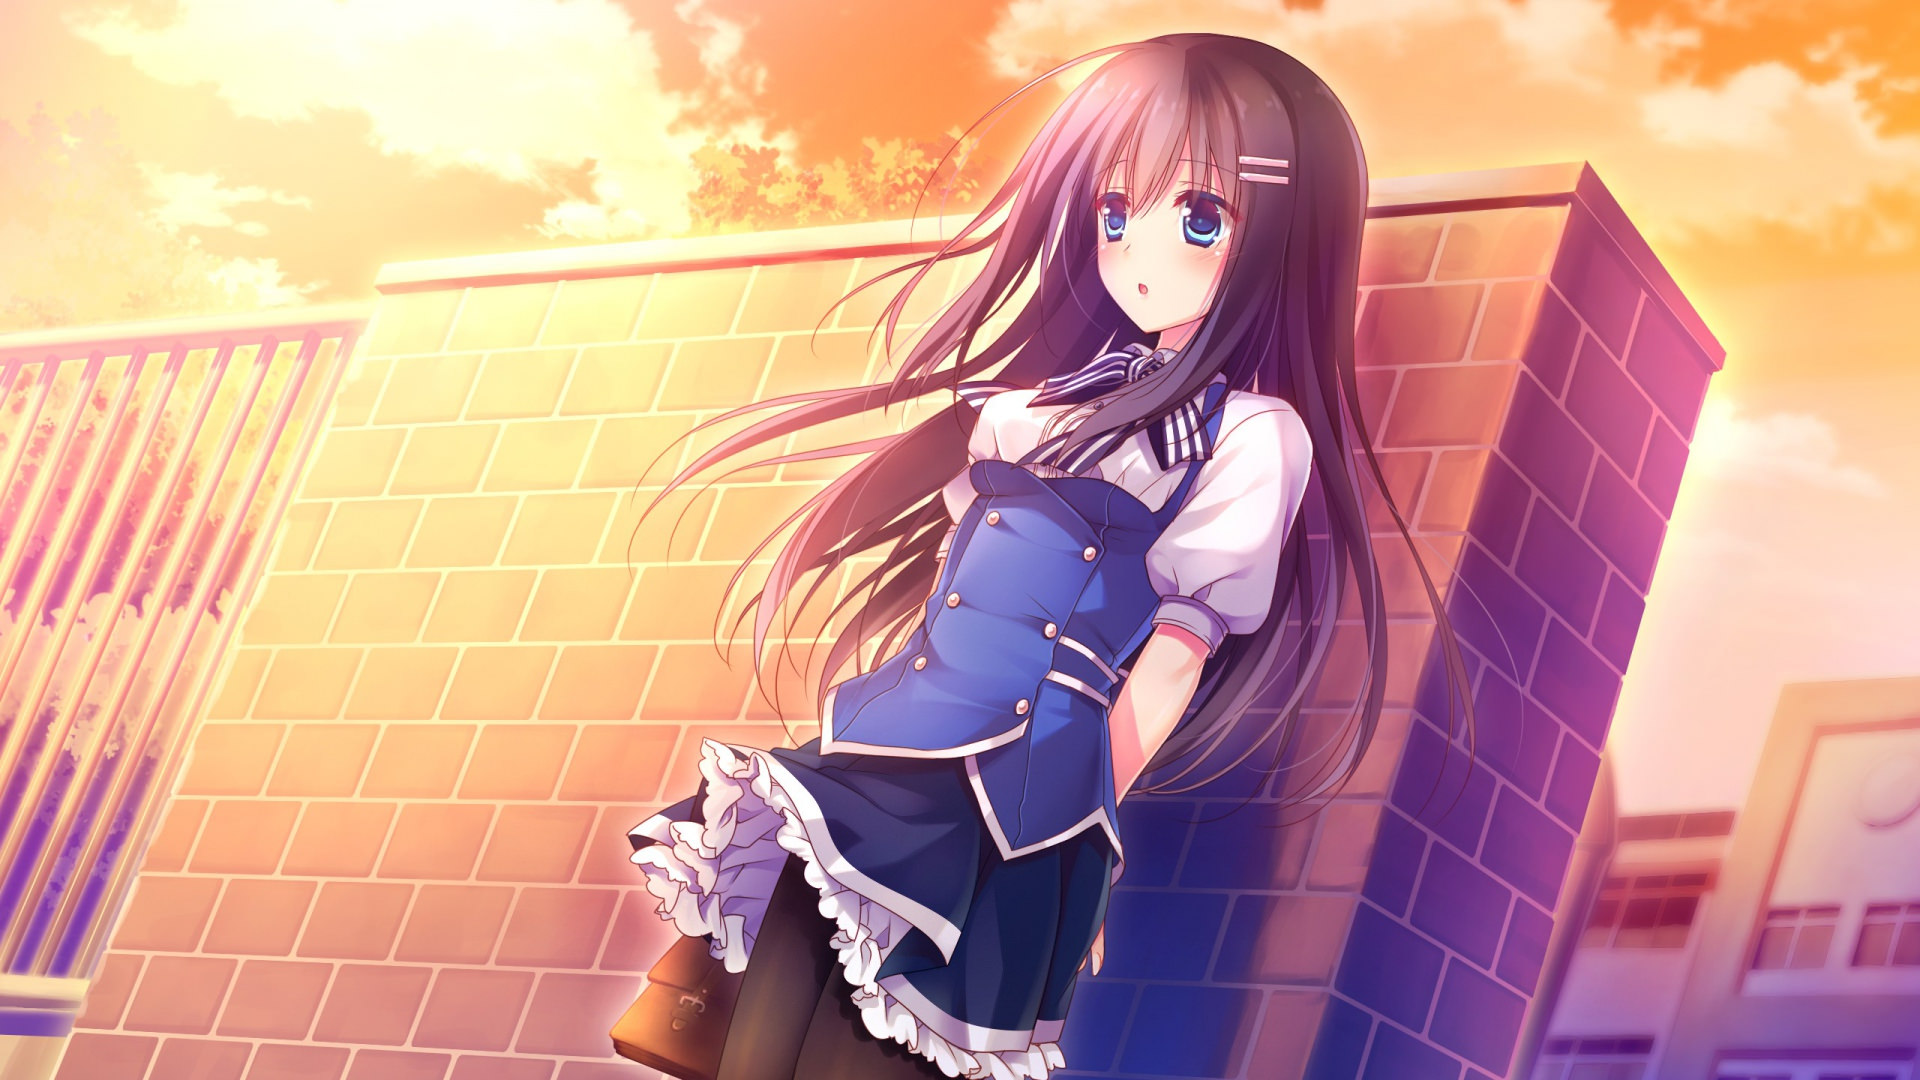 Sad Girl Death Wallpaper 24 Anime Backgrounds Wallpapers Images Pictures